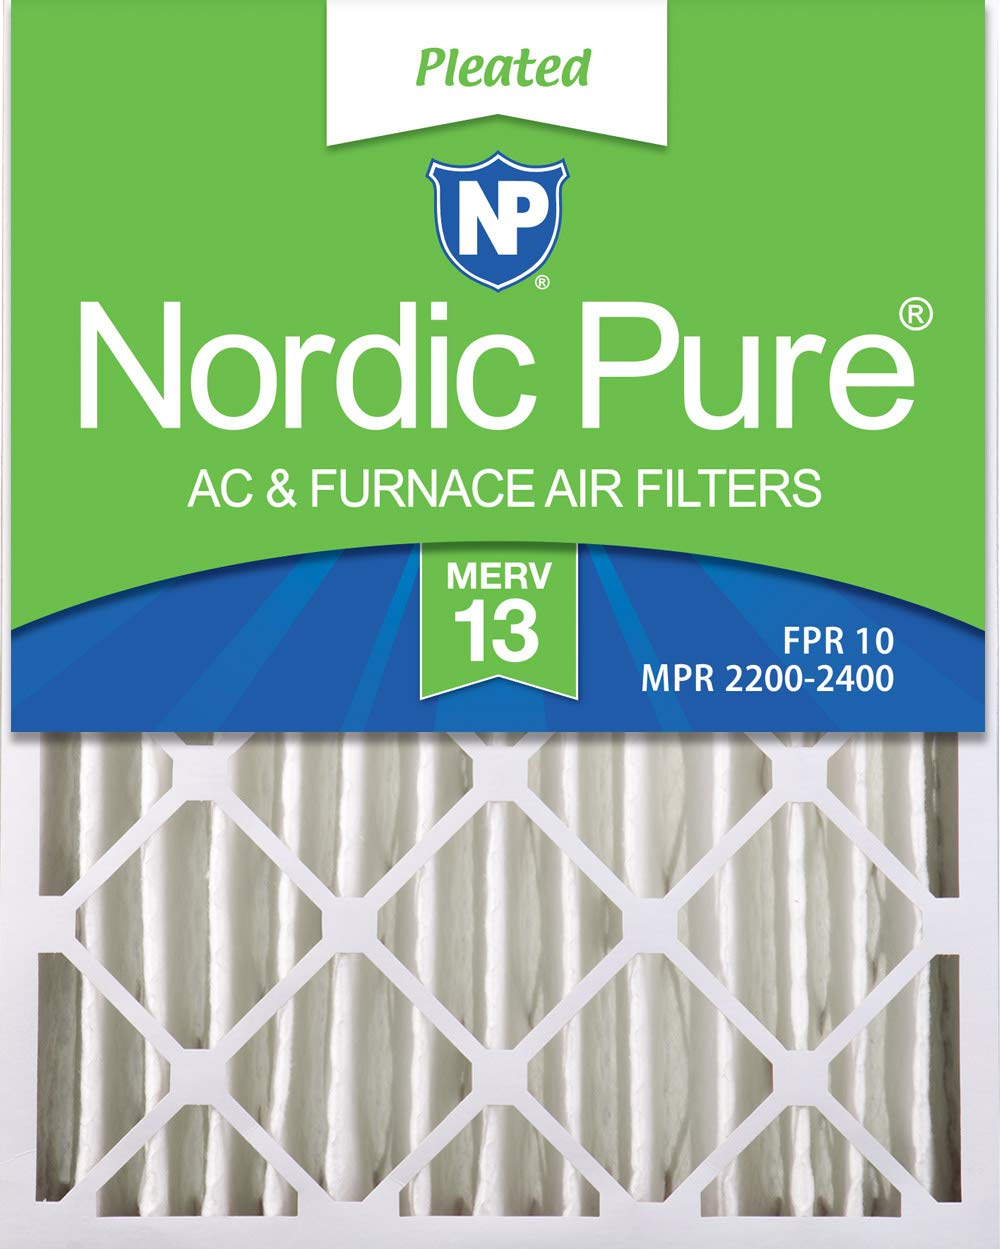 Nordic Pure 16x25x4 (3-5/8 Actual Depth) Pleated AC Furnace Air Filters, 1 Pack, MERV 13 by Nordic Pure